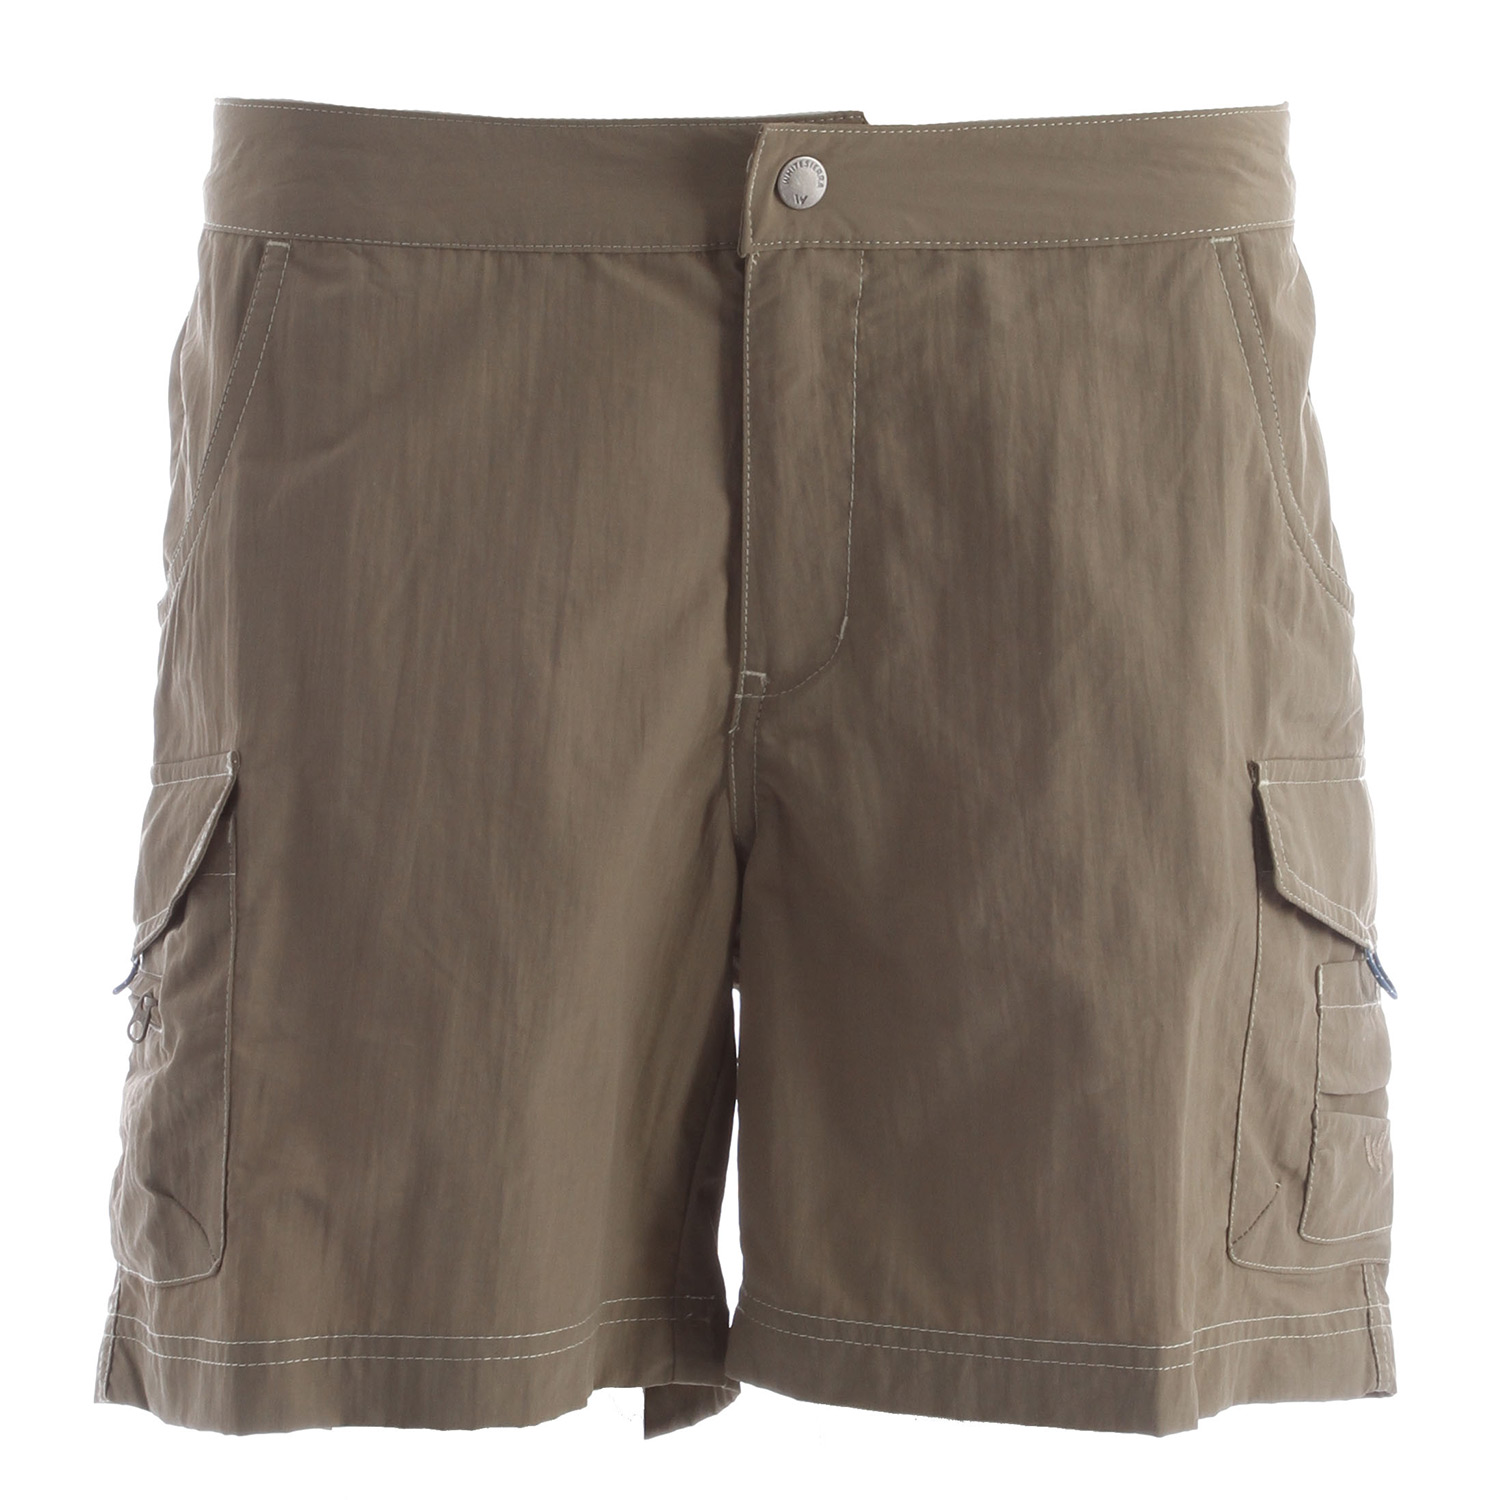 "Made specifically for women, these Womens White Sierra Crystal Cove River Shorts are great for hiking and enjoying a sunny day in. Built to last, these shorts will provide the user with a regular elastic fit and are built to repel water and also offer the wearer with UPF sun protection. These shorts are great for the journey and due to the 100% river cloth, these shorts can be transferred from dry land and into the rushing water. Key Features of the White Sierra Crystal Cove River Shorts: RIVER CLOTH 100% nylon woven UPF 30 Quick dry Travel friendly Comfort fit side elastic Contrast color topstitching Side cargo pockets Fabric weight: 4oz Inseam: 6"" - $19.95"